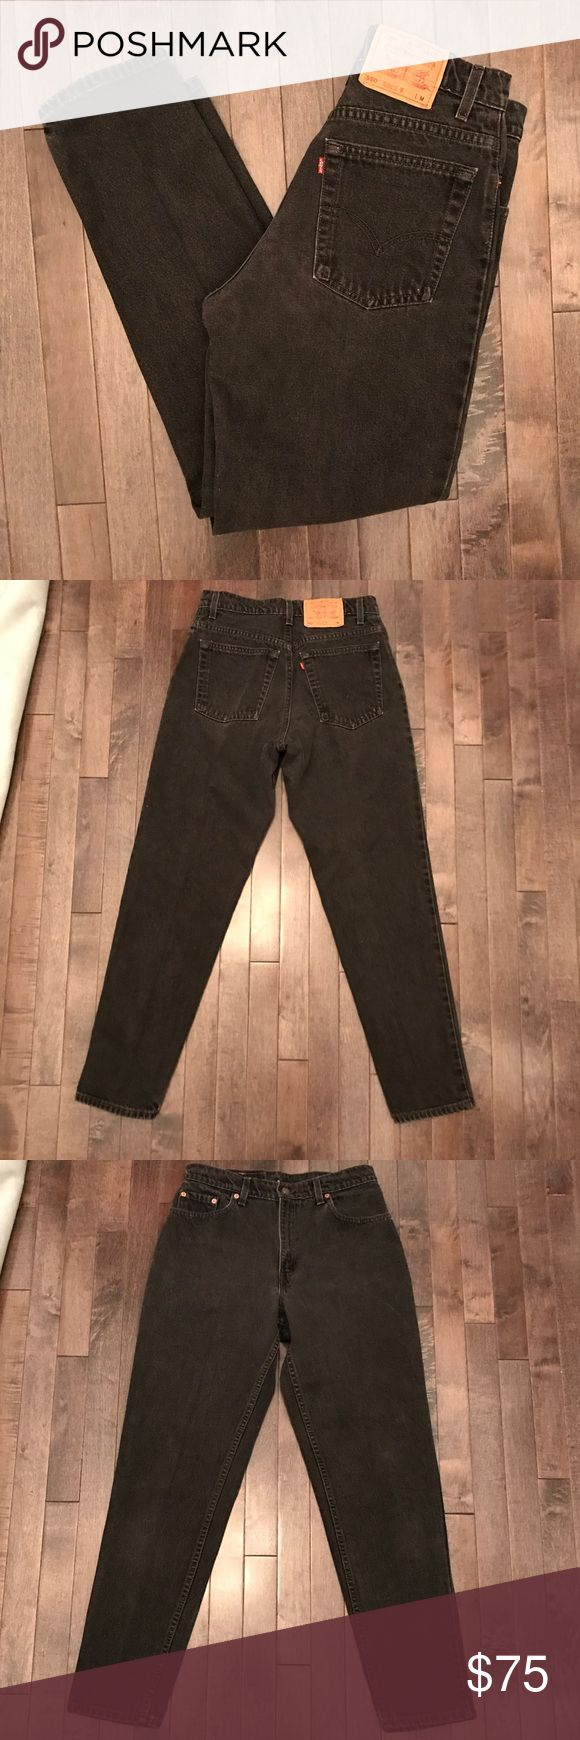 "Vintage Levi's 550 black high waist jeans Killer vintage Levi's 550 black high waist jeans. Has a 28""waist best fit for a modern jean size 27/28. So cool and ready for a great home Levi's Jeans Skinny"